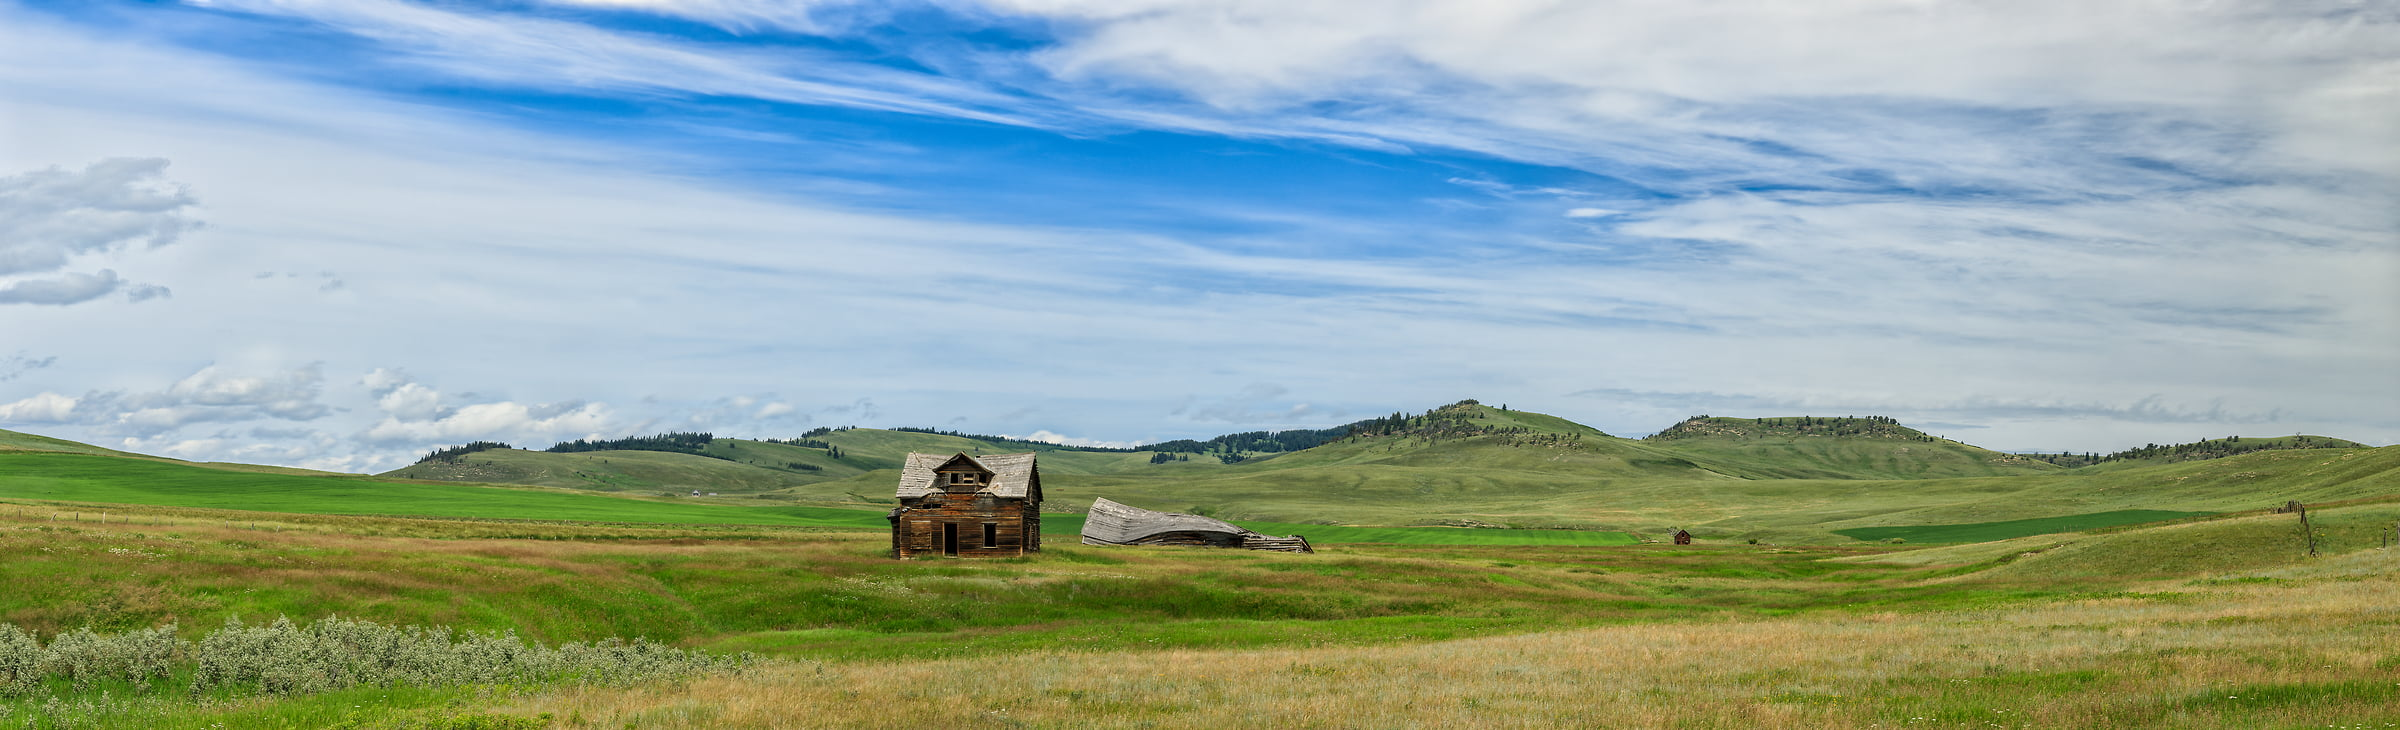 232 megapixels! A very high resolution, large-format VAST photo print of a house on a prairie; landscape photograph created by Scott Dimond in Pincher Creek No. 9, Alberta, Canada